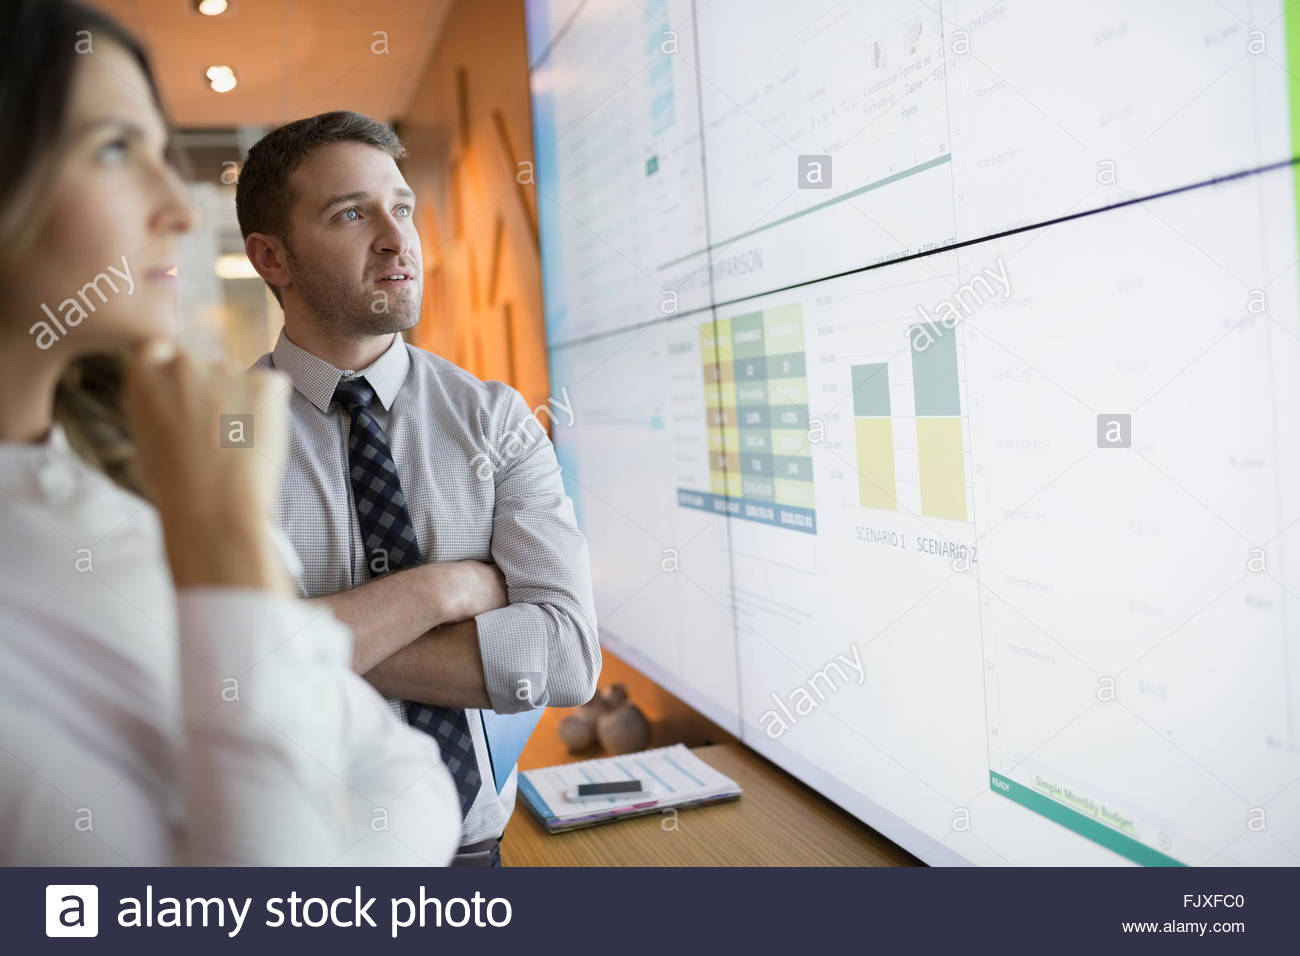 Business people looking up data on projection screen - Stock Image